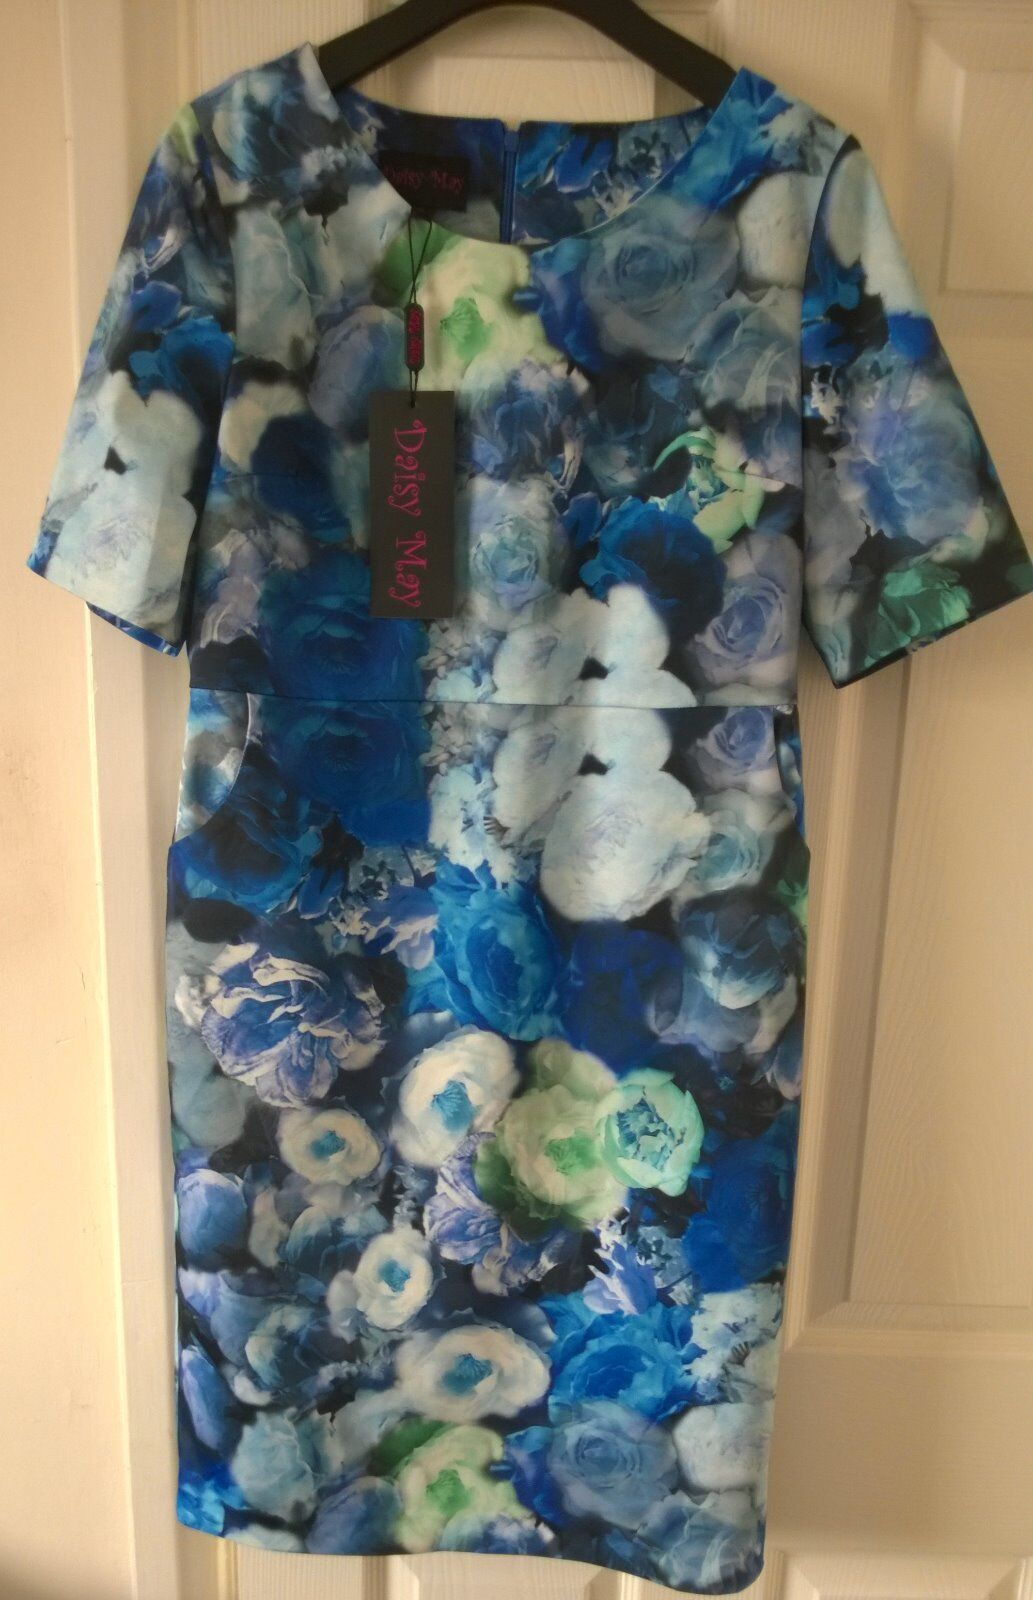 Daisy May Stretchy bluee Designer Dress in Floral prints